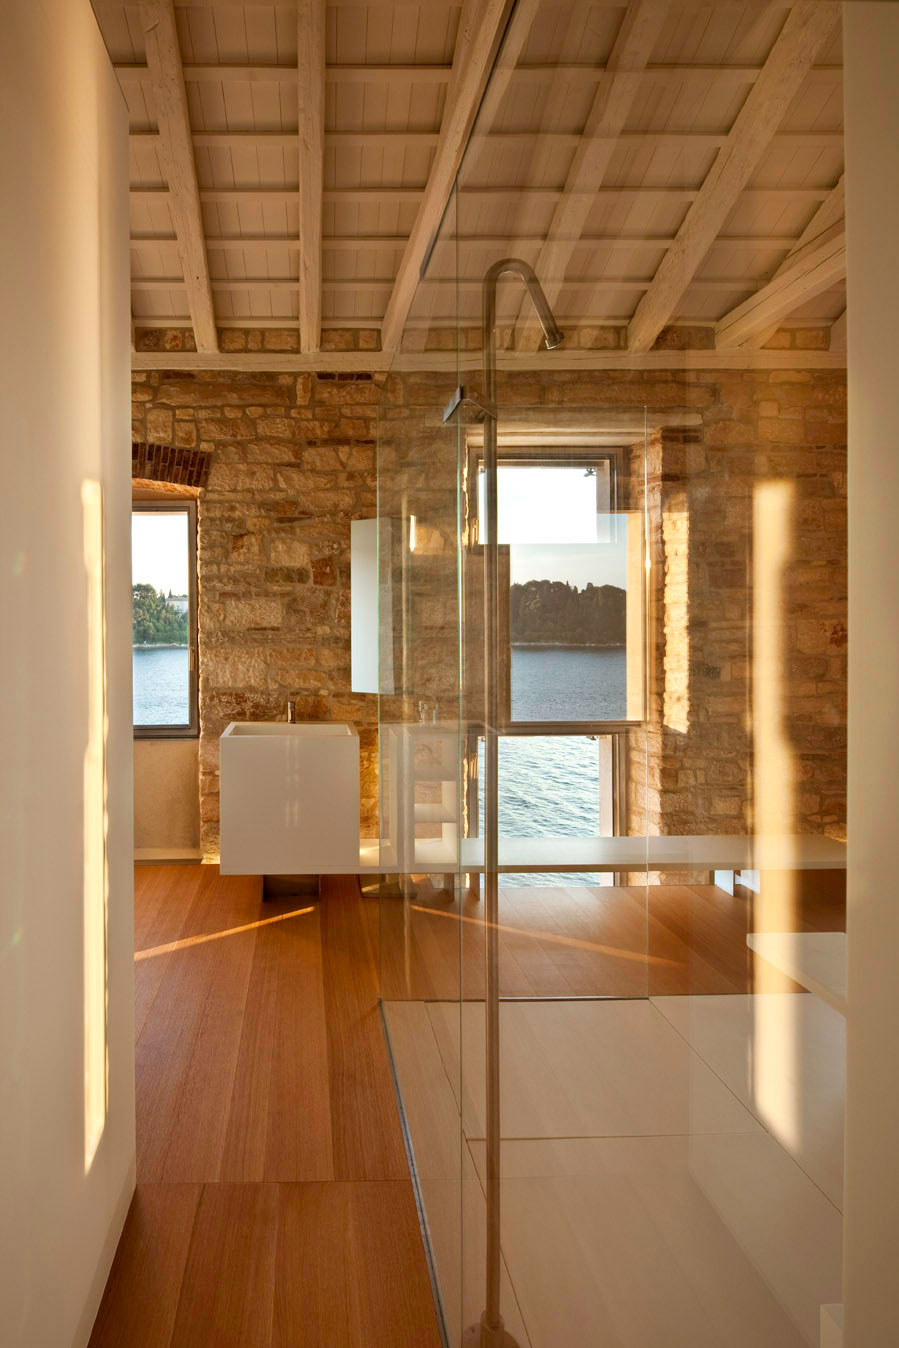 Contemporary Bathroom, Renovation of an 18th Century Building in Rovinj, Croatia